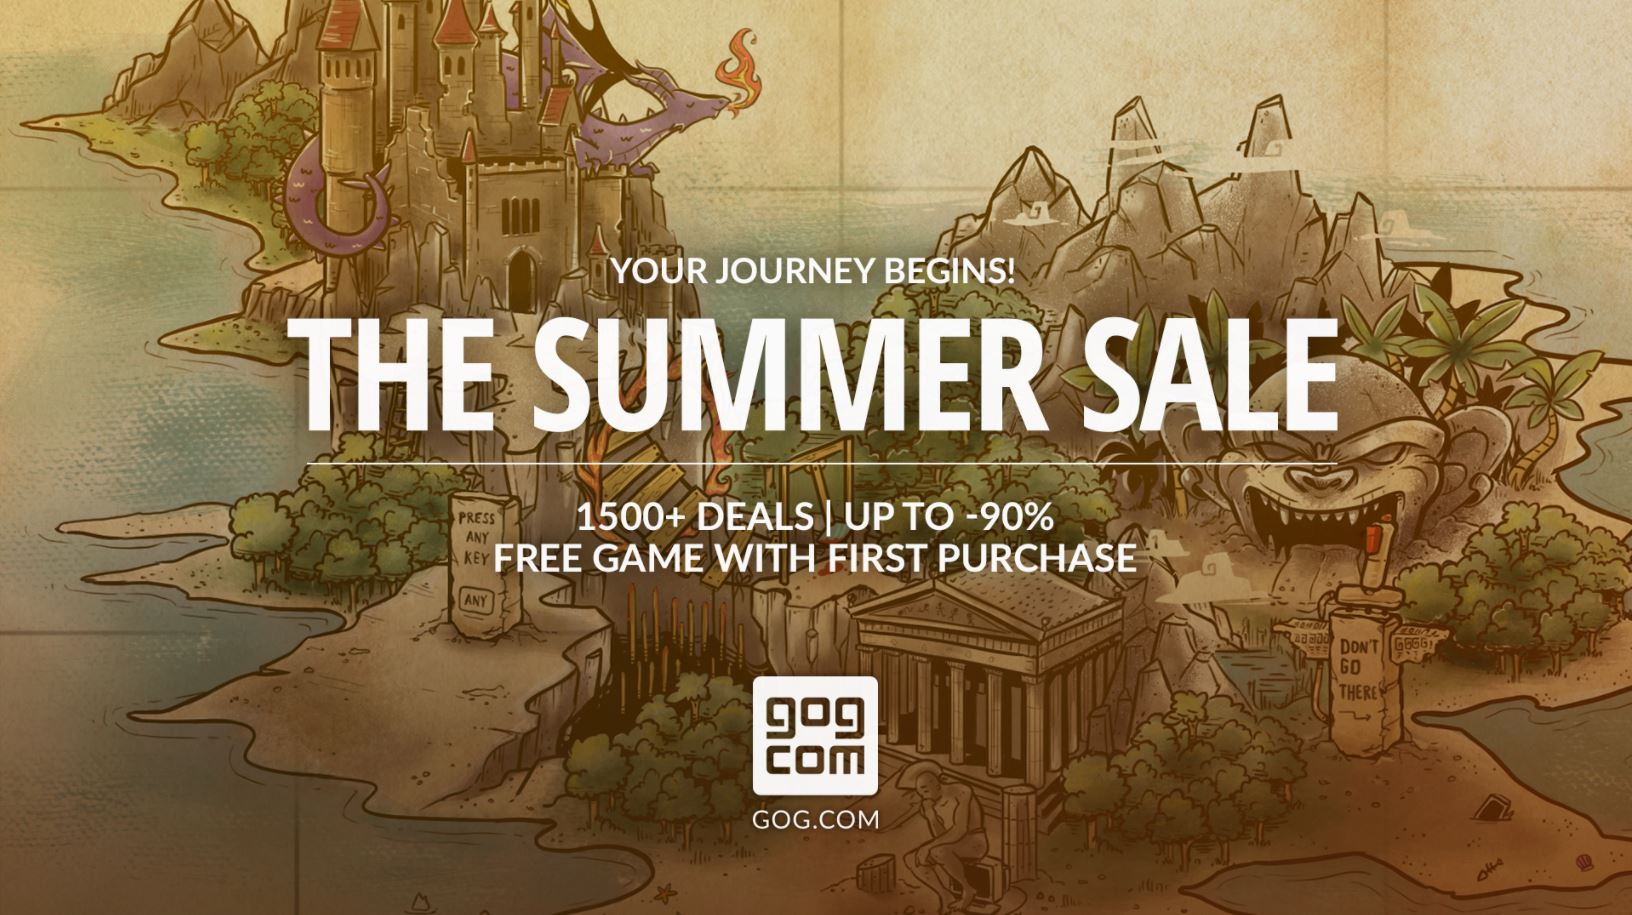 GOG Summer Sale Begins Today for PC Games